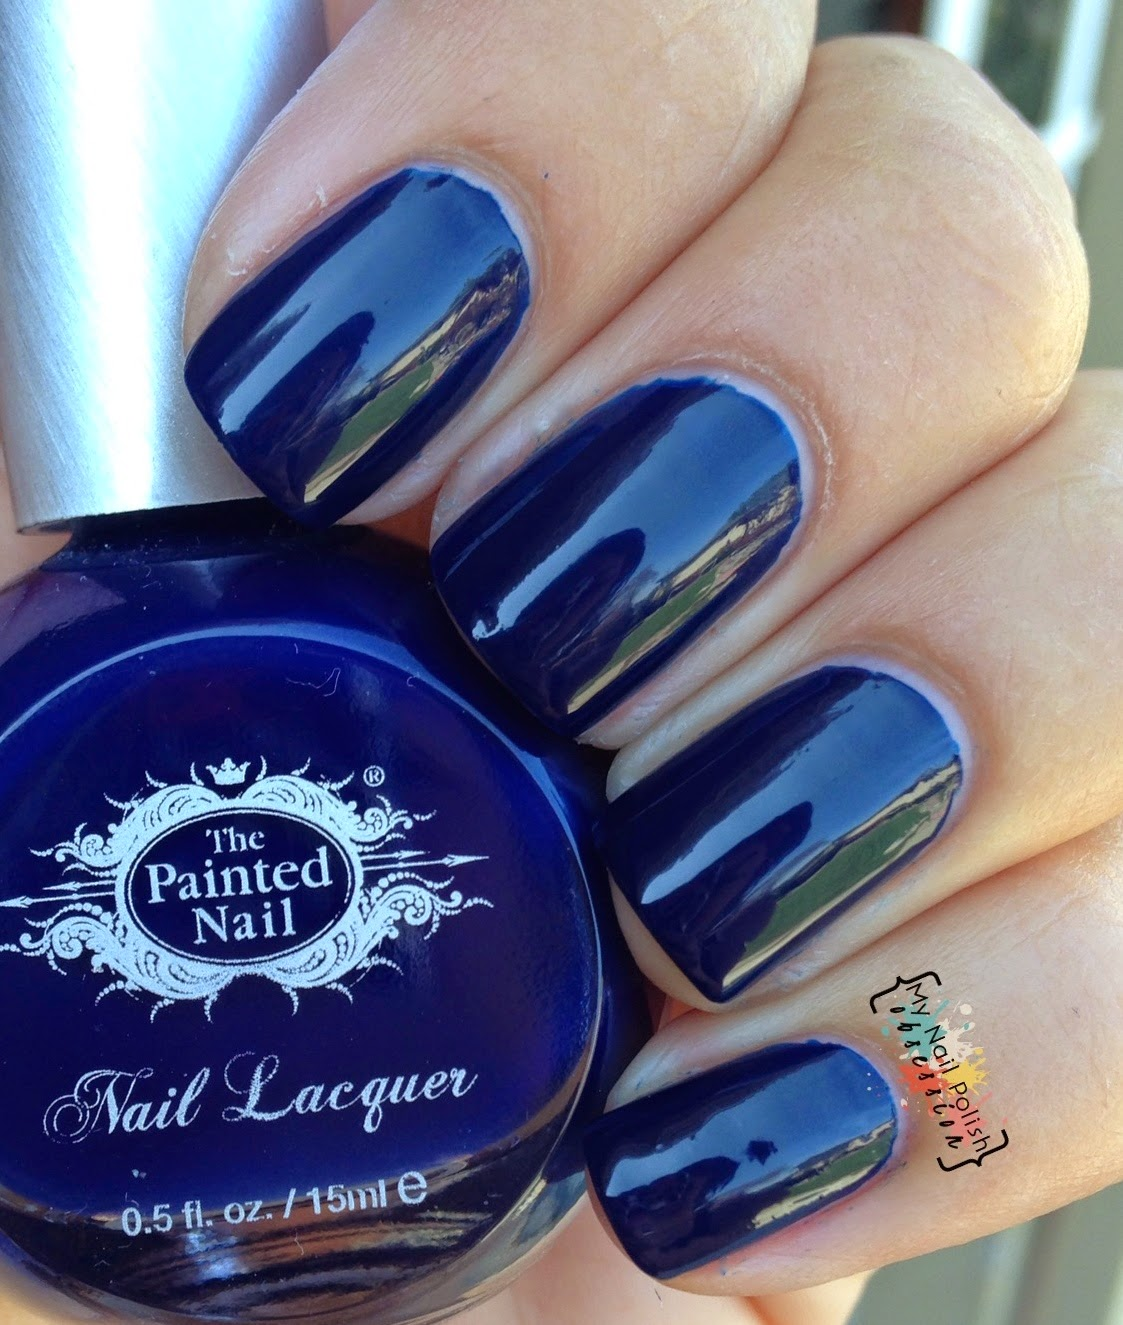 The Painted Nail Marie-Claire